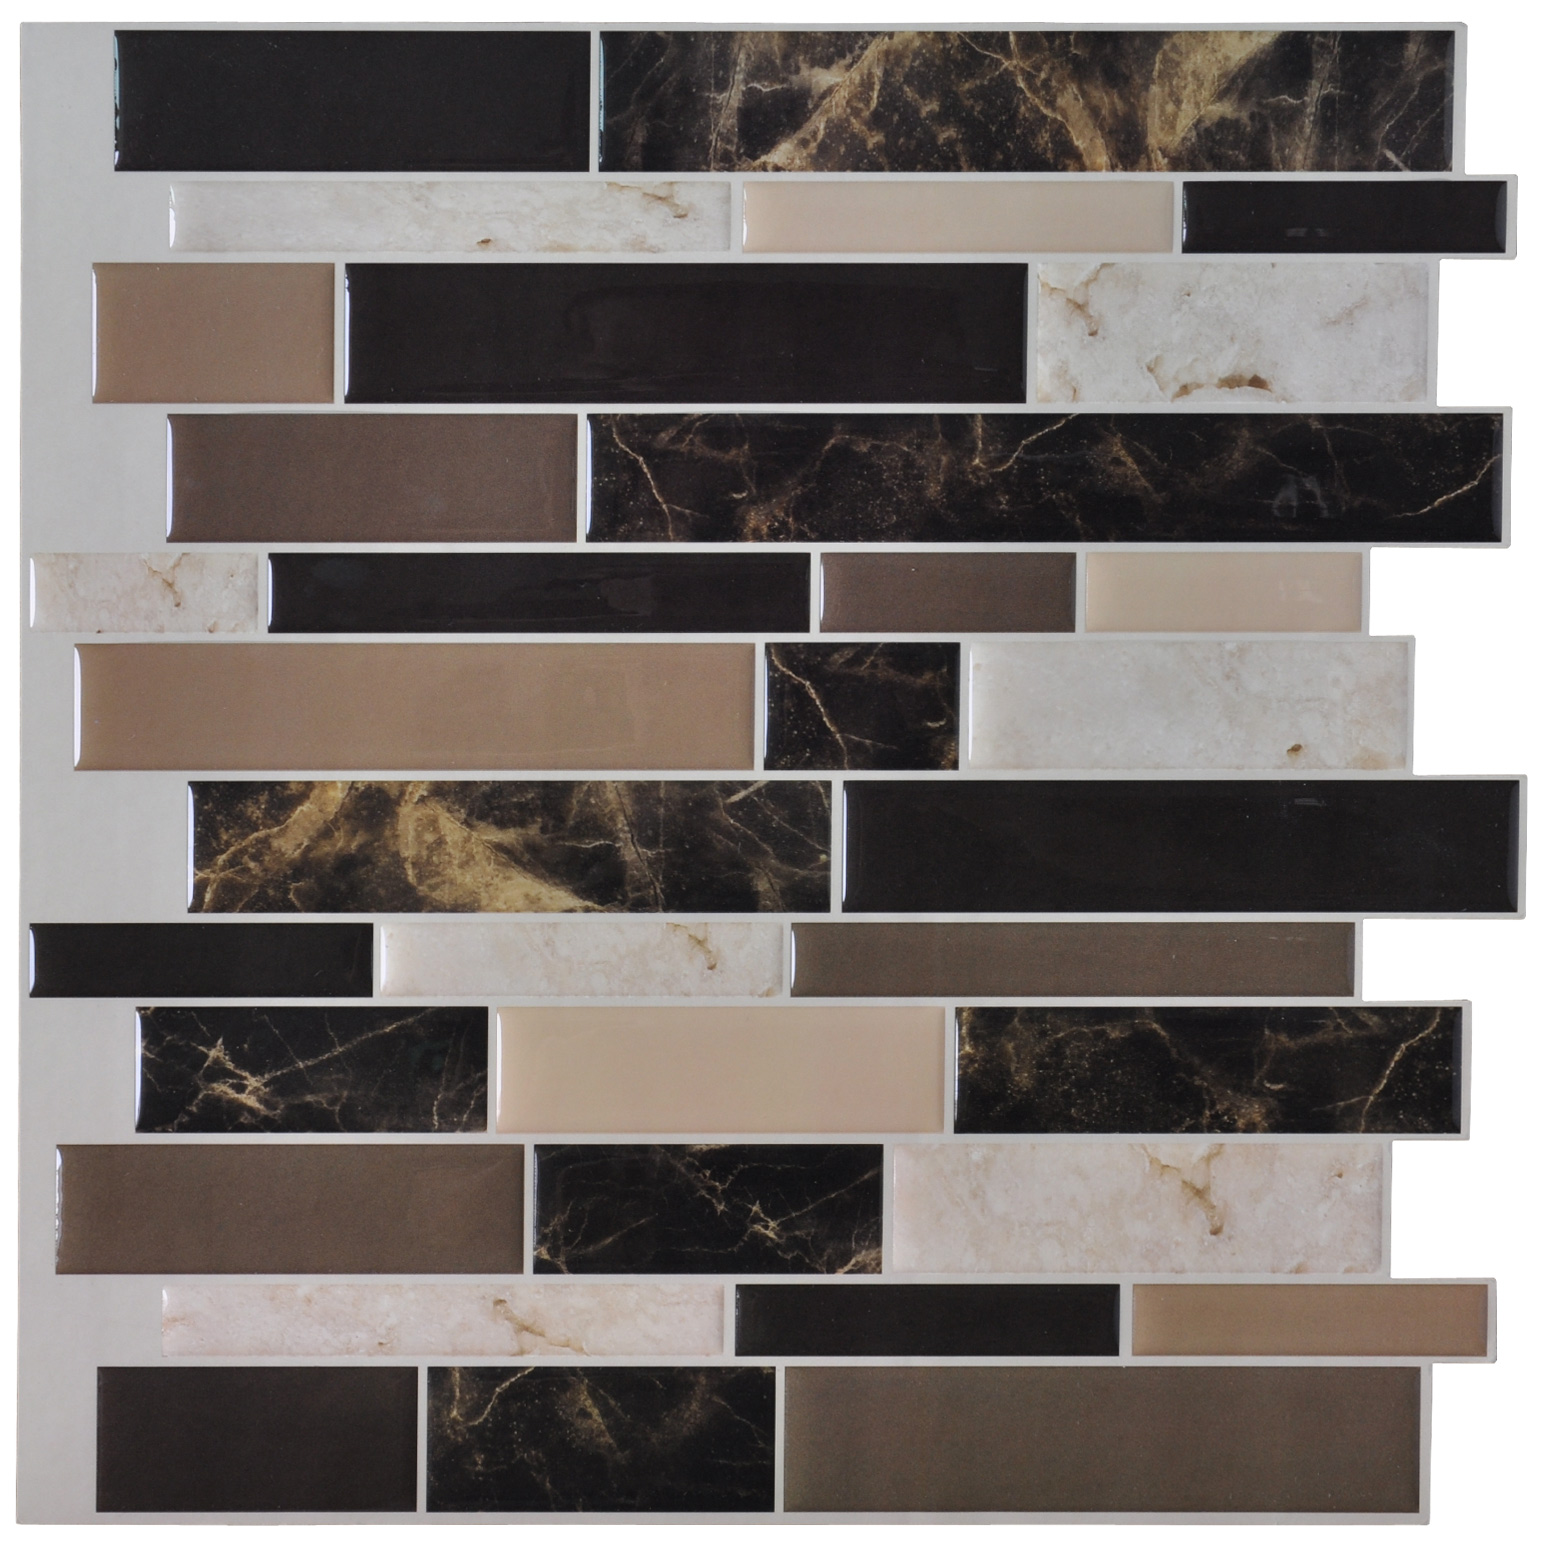 Vinyl Self Adhesive Backsplash Tiles For Kitchen 12 X12 Set Of 6